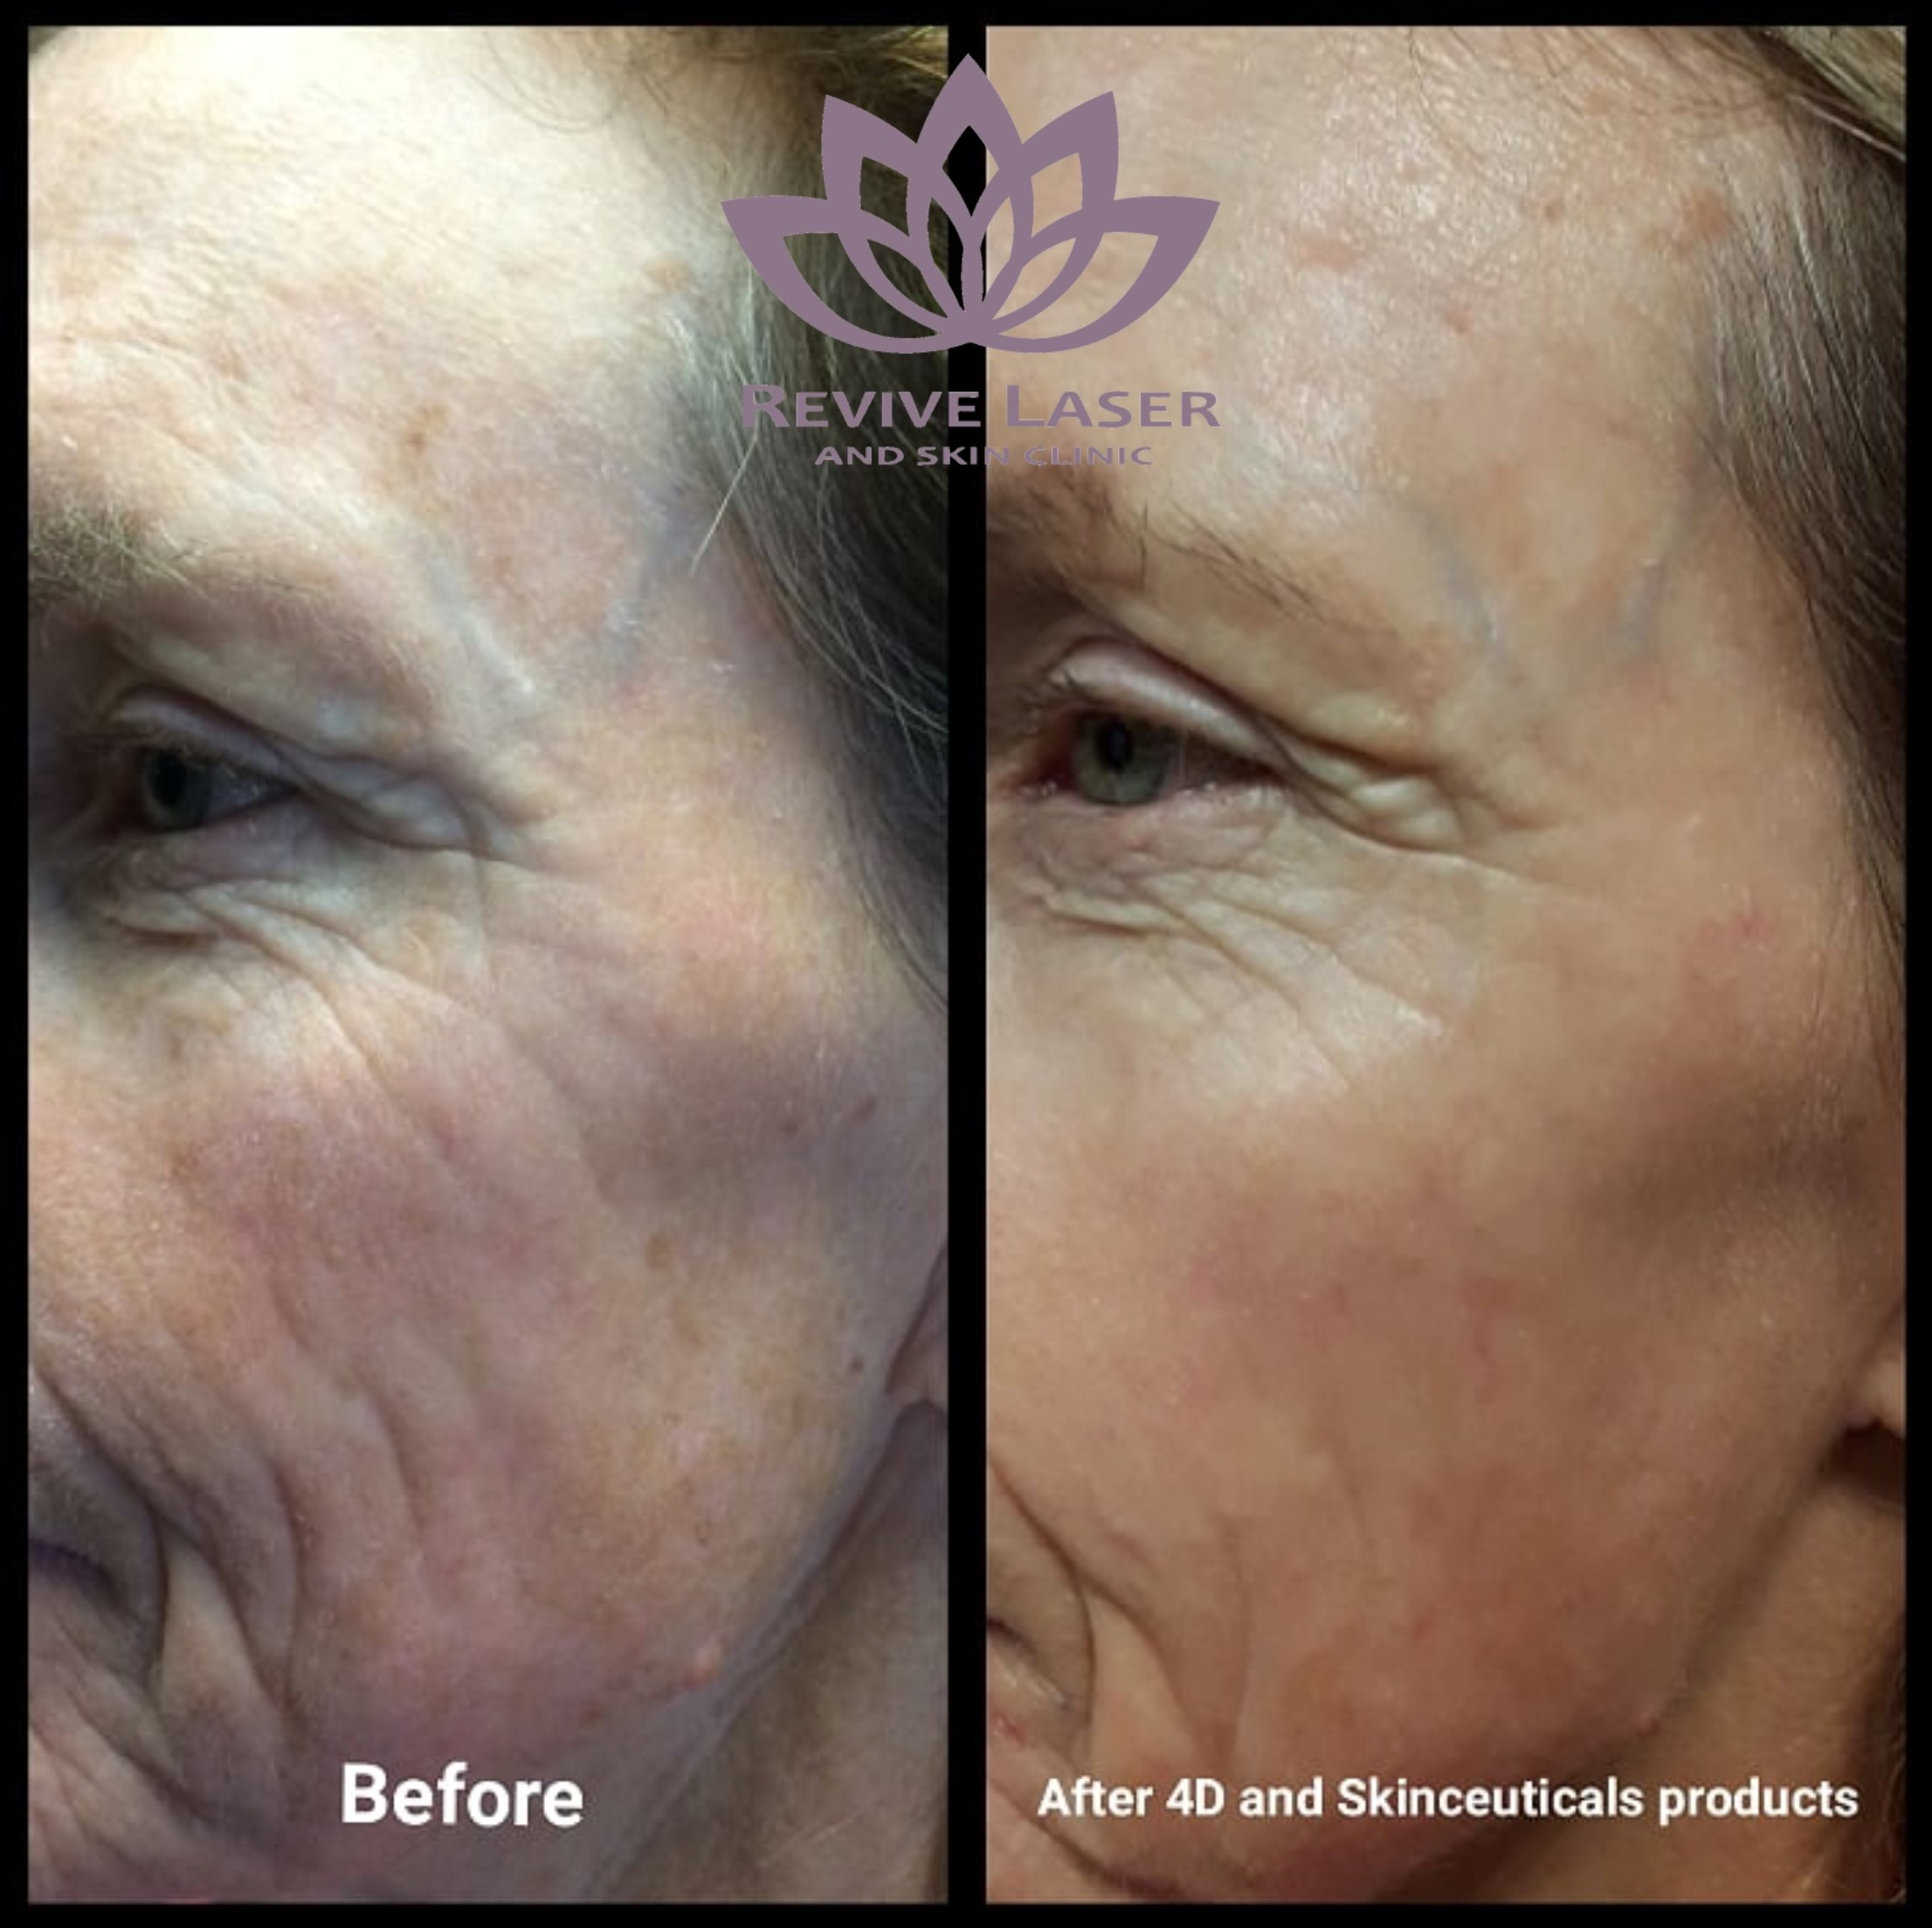 Laser Skin Tightening and Skin Rejuvenation Treatments